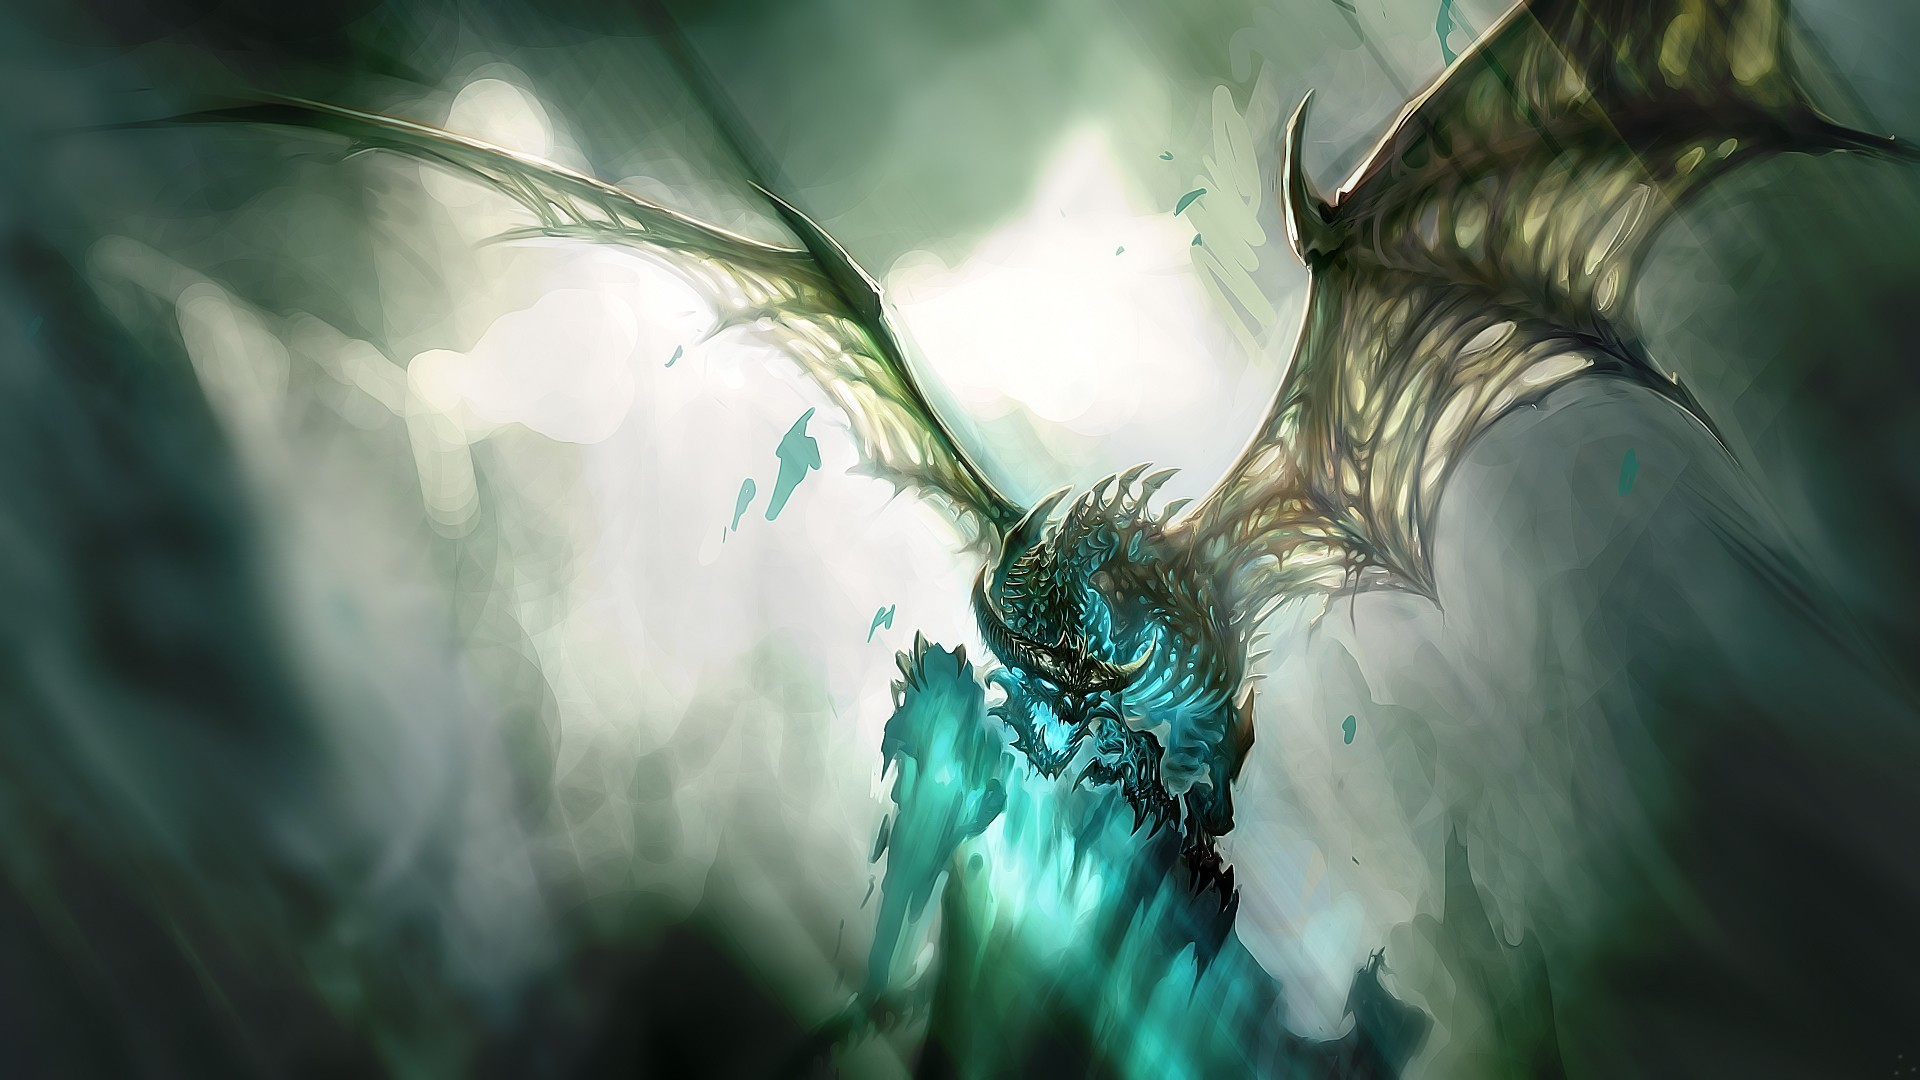 Video Game - World Of Warcraft  - Dragon - Fantasy Wallpaper